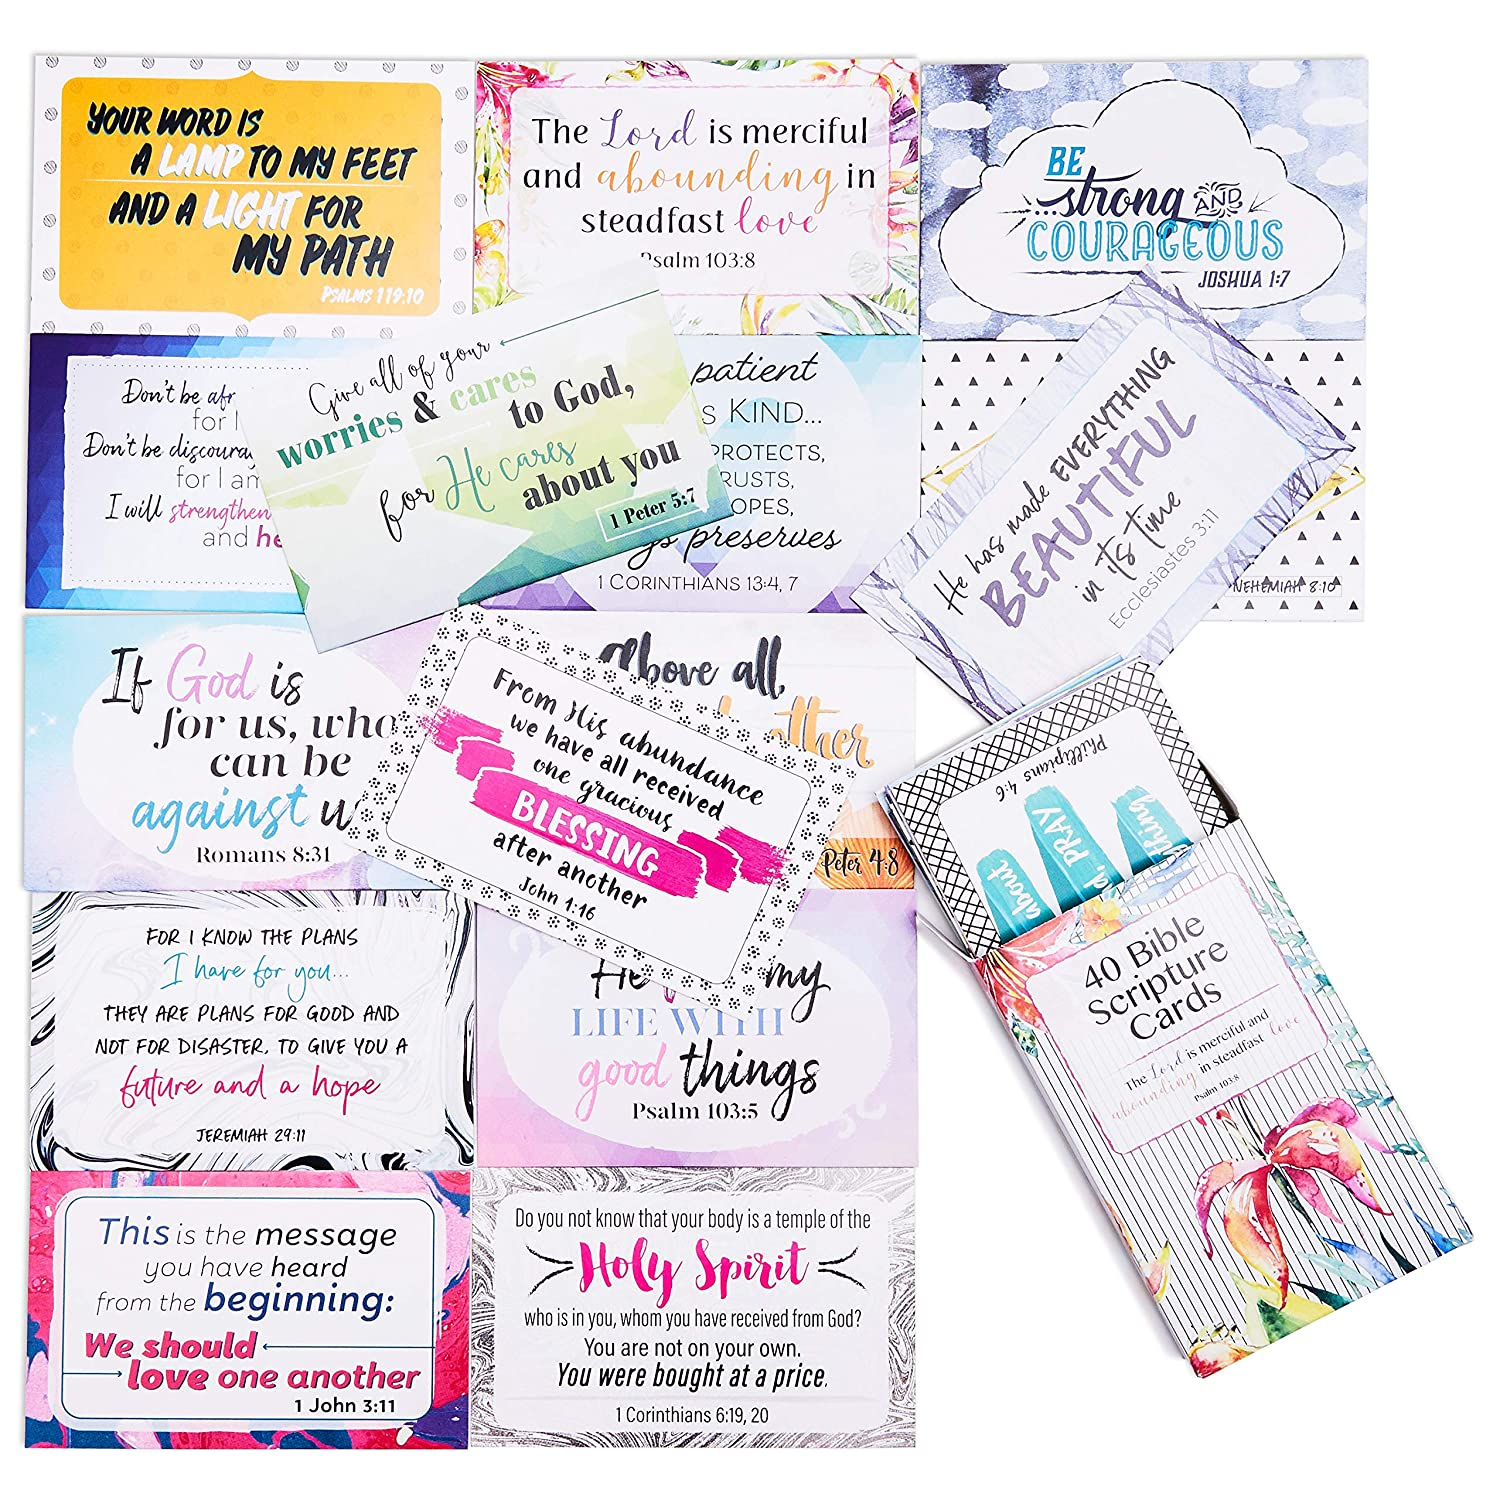 Best Paper Greetings Bible Verse Scripture Cards - 40-Design Inspirational  Christian Prayer Message Cards, 3 3 x 2 1 Inches